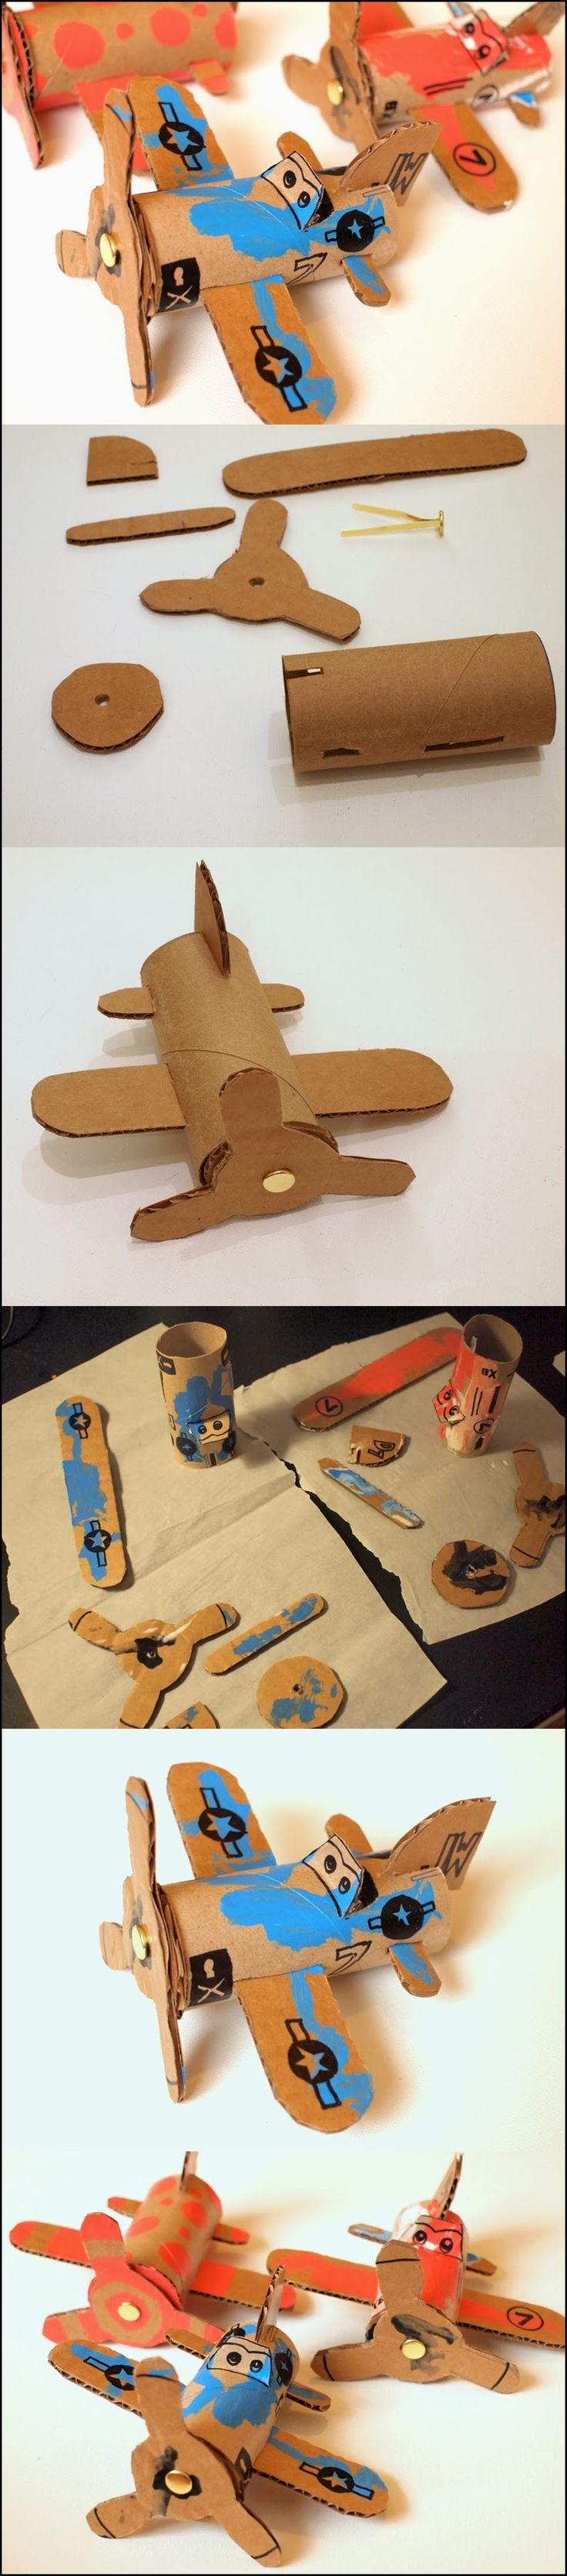 Flugzeug aus Klorolle - Wonderful DIY Toilet Roll Airplanes | WonderfulDIY.com